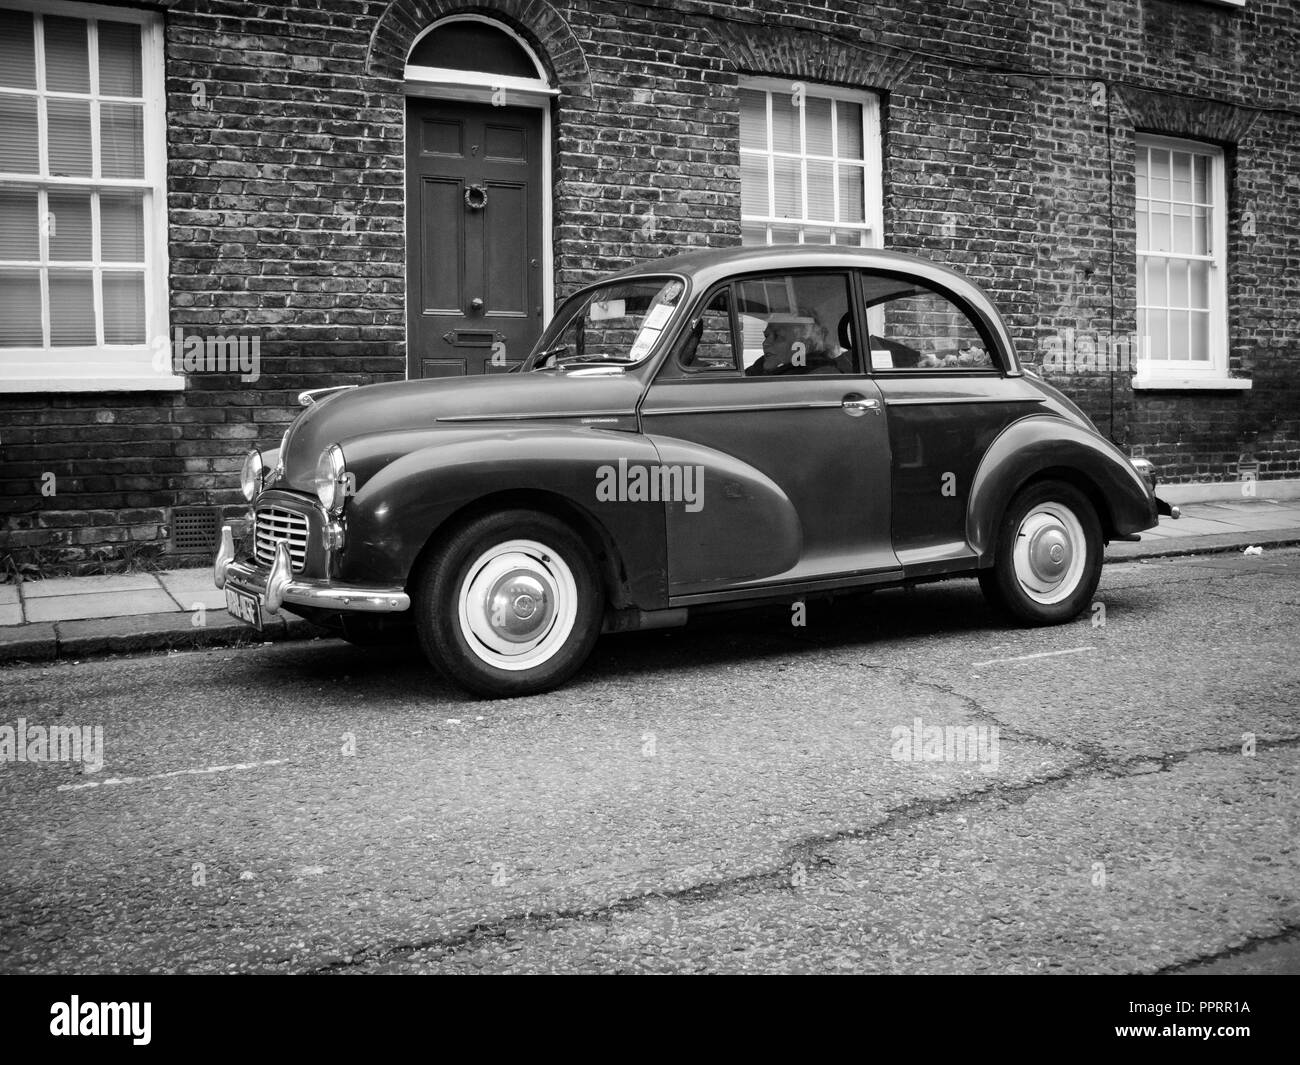 Morris Minor parked in front of a row of terraced houses in London. - Stock Image